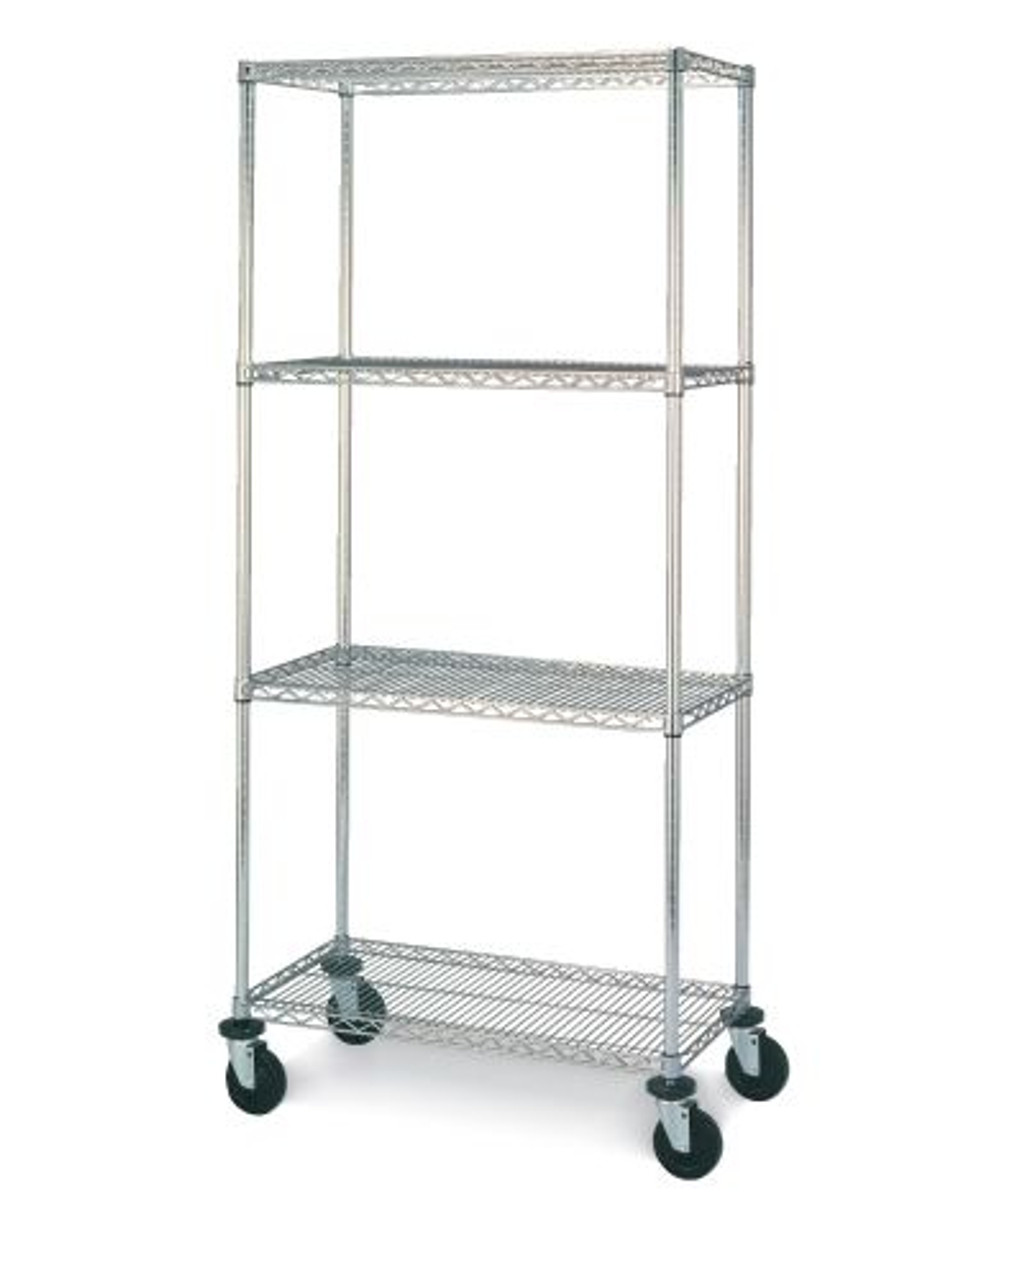 "Olympic 14"" Deep 4 Shelf Mobile Carts - Chrome - 14"" x 36"" x 79"" MJ1436-74UC"